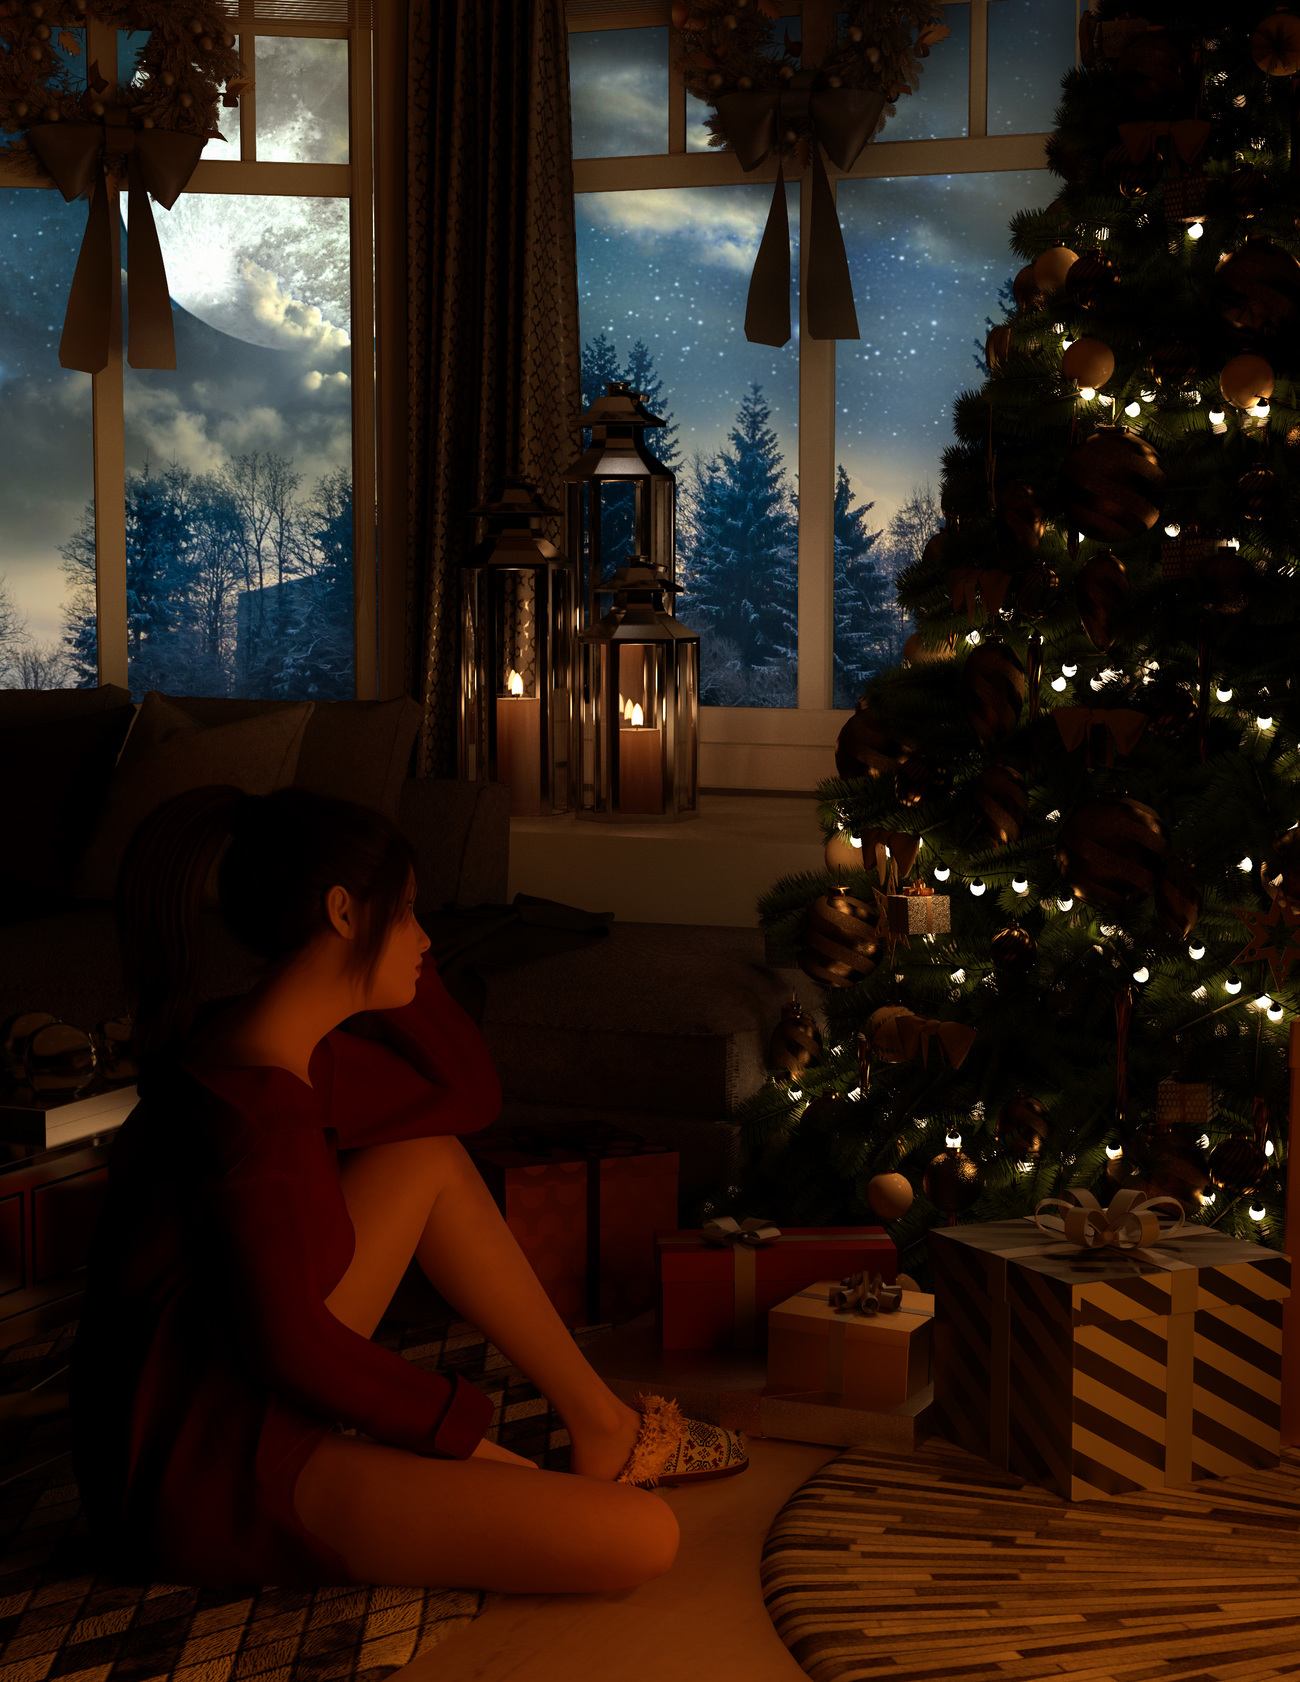 The Night Before Christmas by Calico